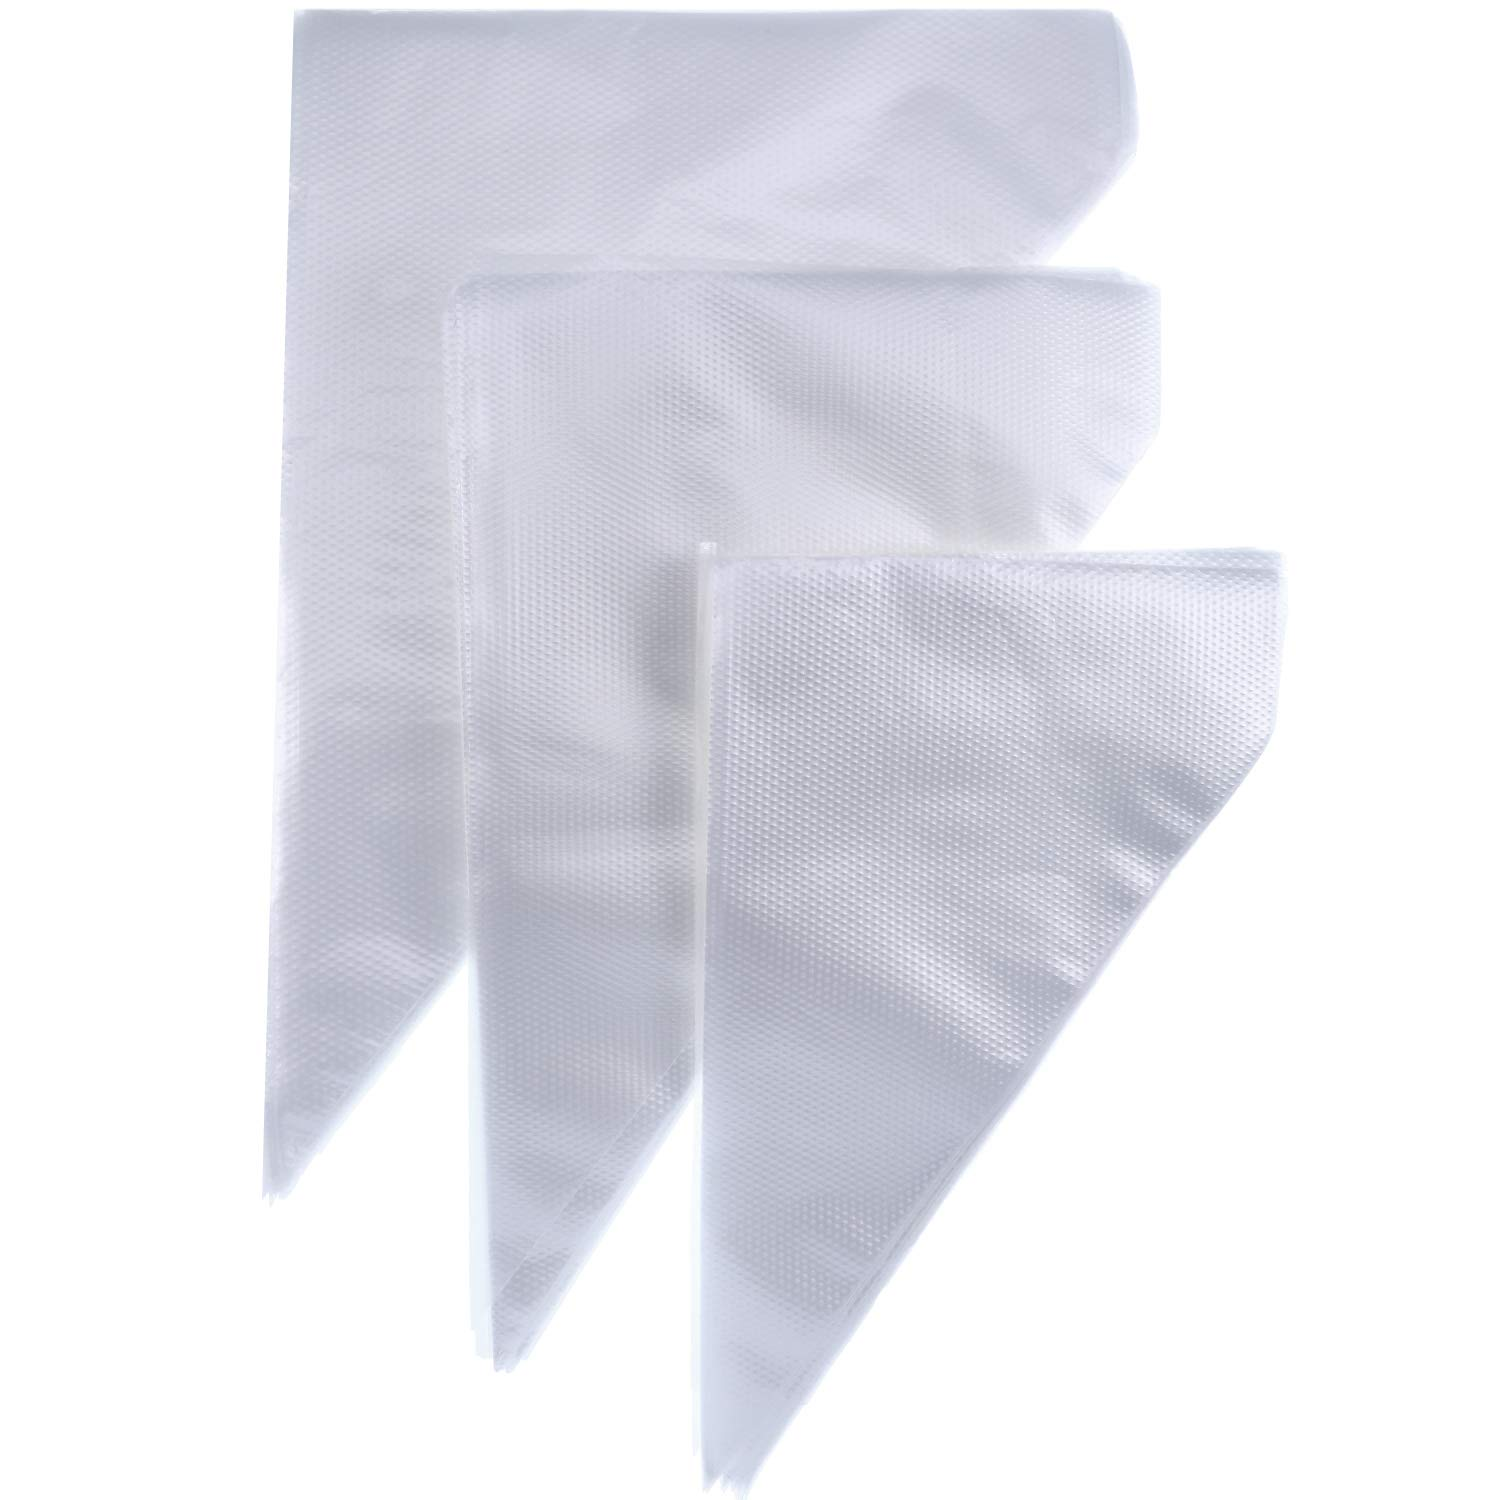 Jovitec 300 Pieces Disposable Icing Piping Bag Cake Pastry Bags Cupcake Decorating Bag Cookie Baking Frosting, 3 Sizes